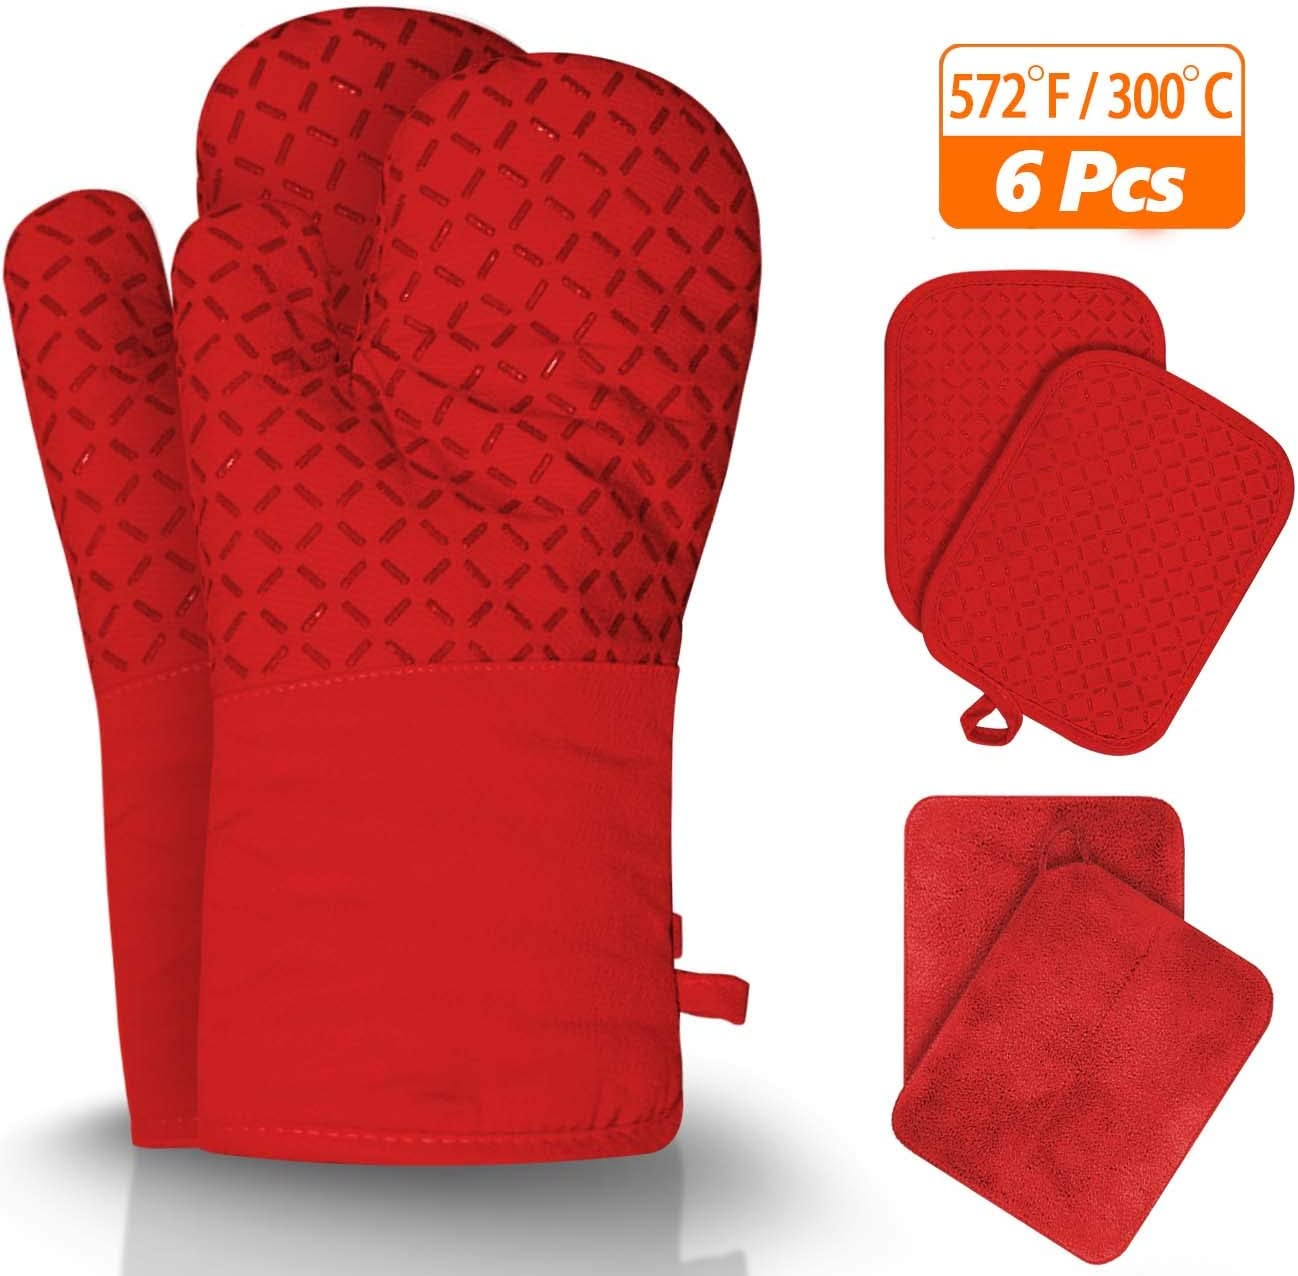 Jusen Oven Mitts and Pot Holder,6-Piece Kitchen Oven Glove,500 Degree high Temperature Resistant Super Long Oven Glove and Pot Holder,Non-Slip Silicone Surface,Used for Grilling,Baking,Oven (Red)